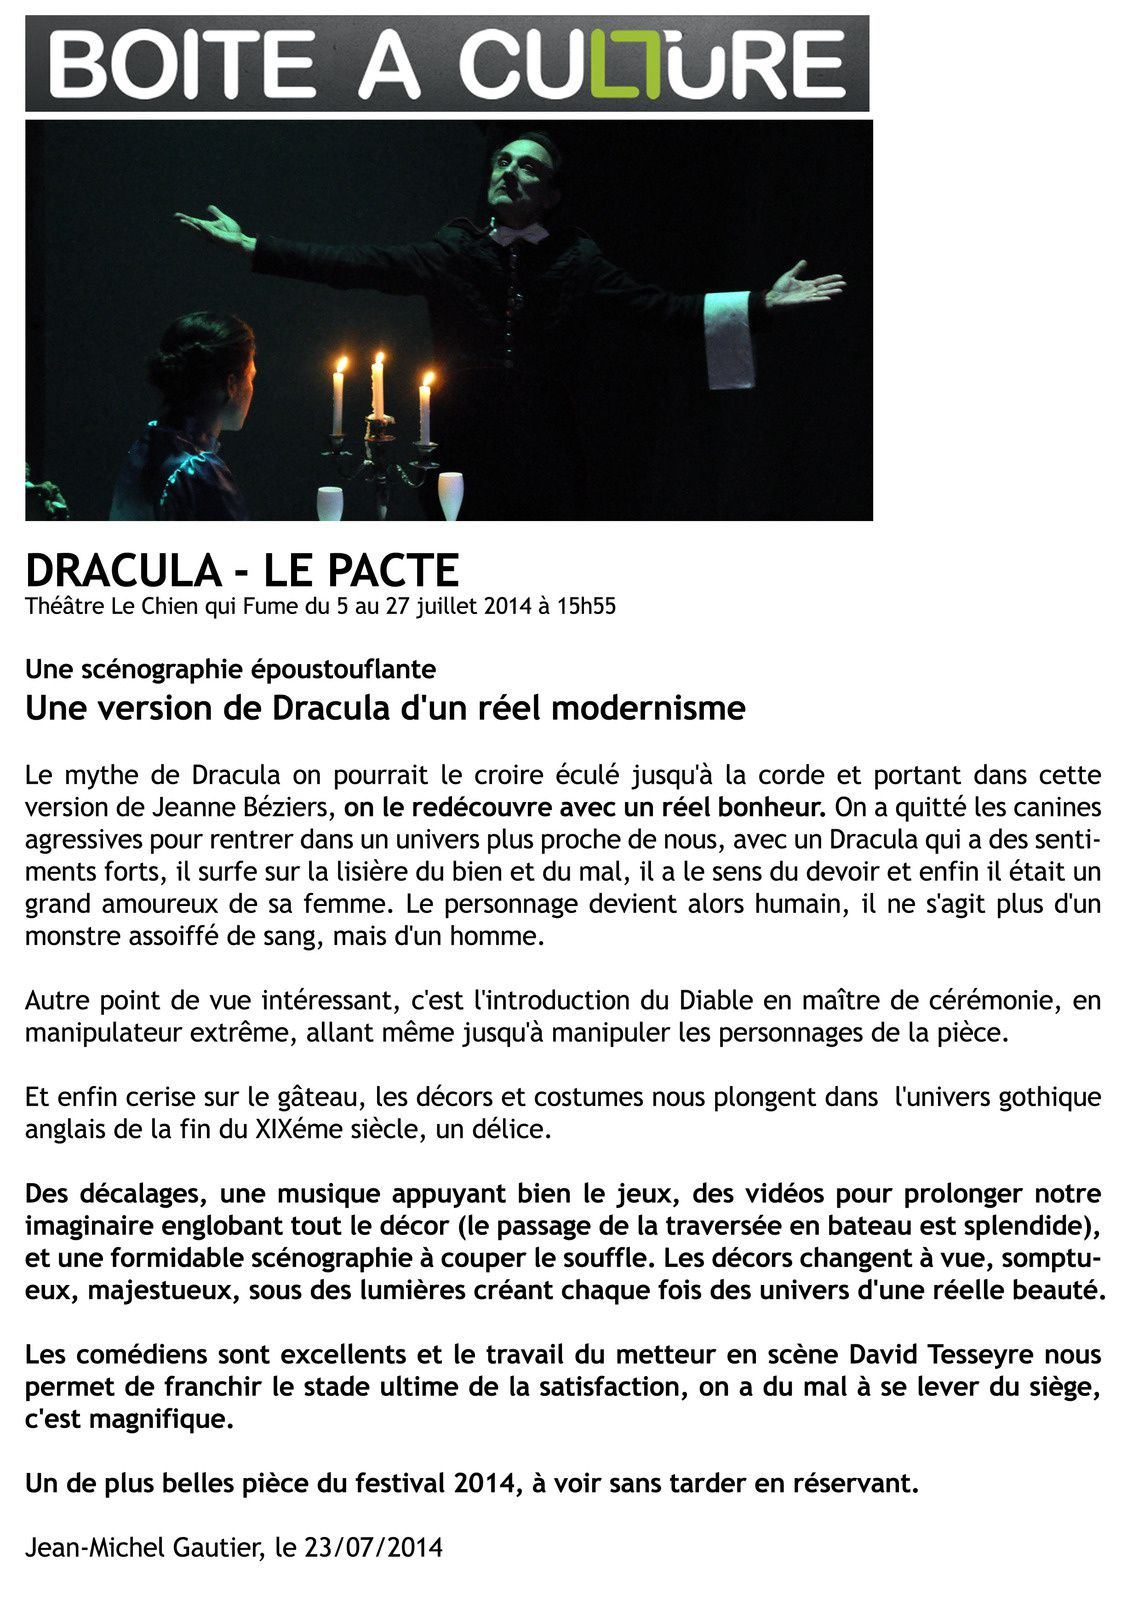 revue de presse du spectacle dracula le pacte. Black Bedroom Furniture Sets. Home Design Ideas